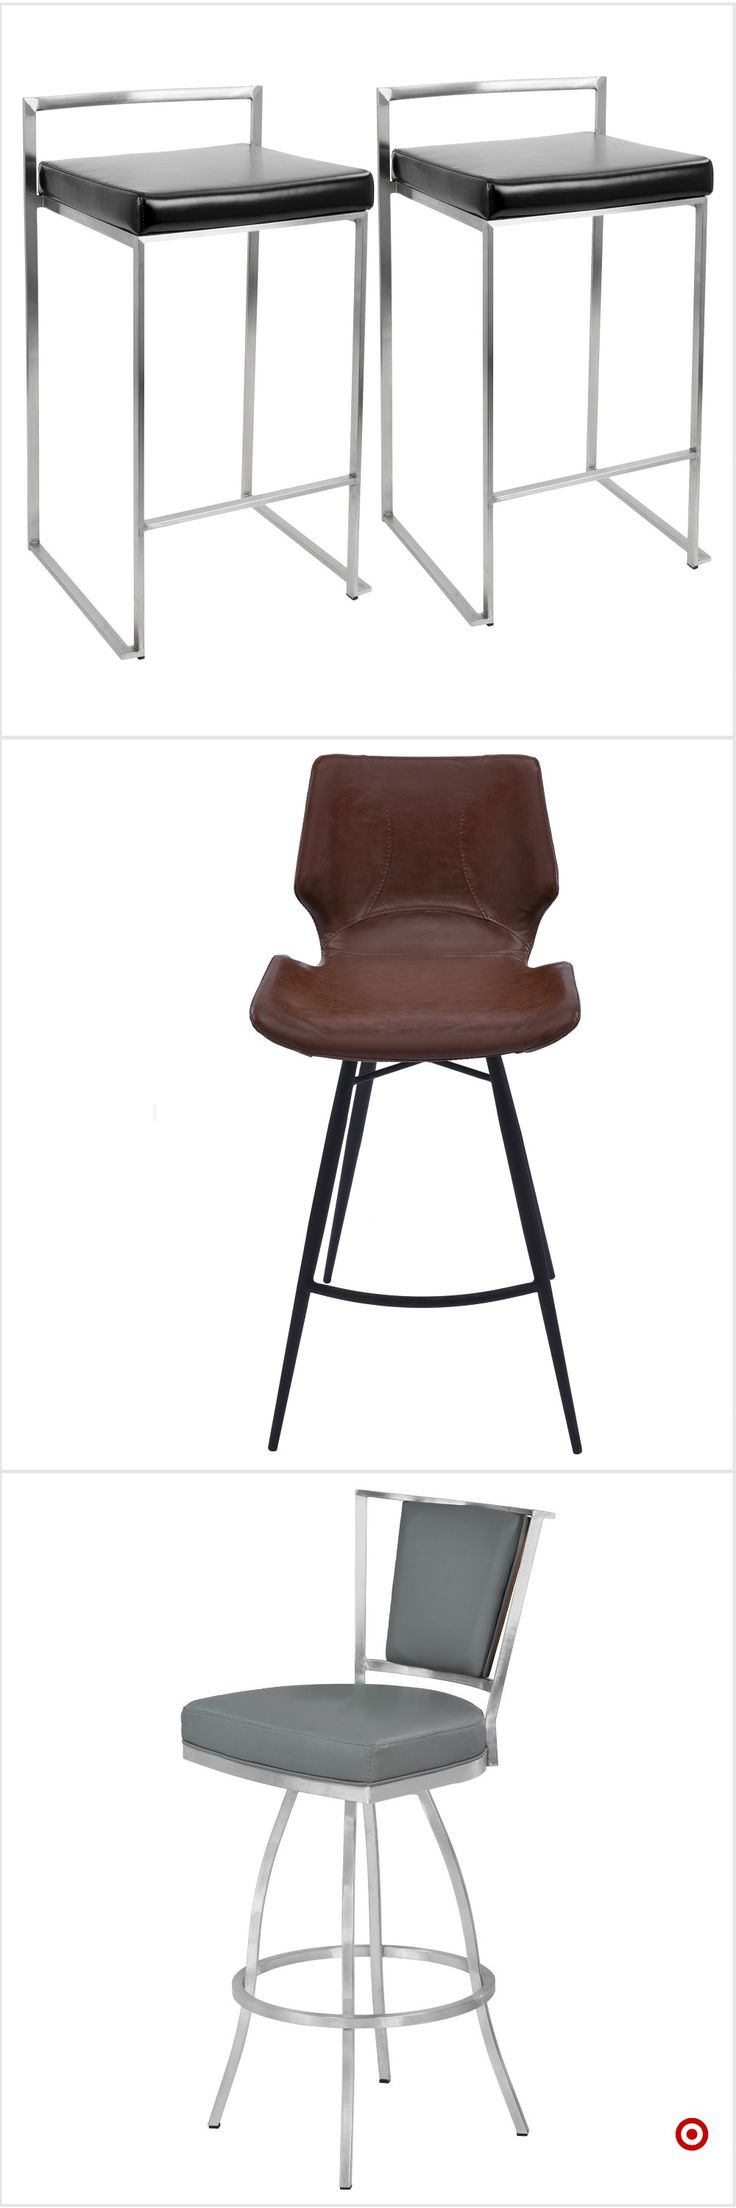 Shop Target for bar stools counter stools extra tall stools you will love at great low prices. Free shipping on orders of $35+ or free same-day pick-up in store.